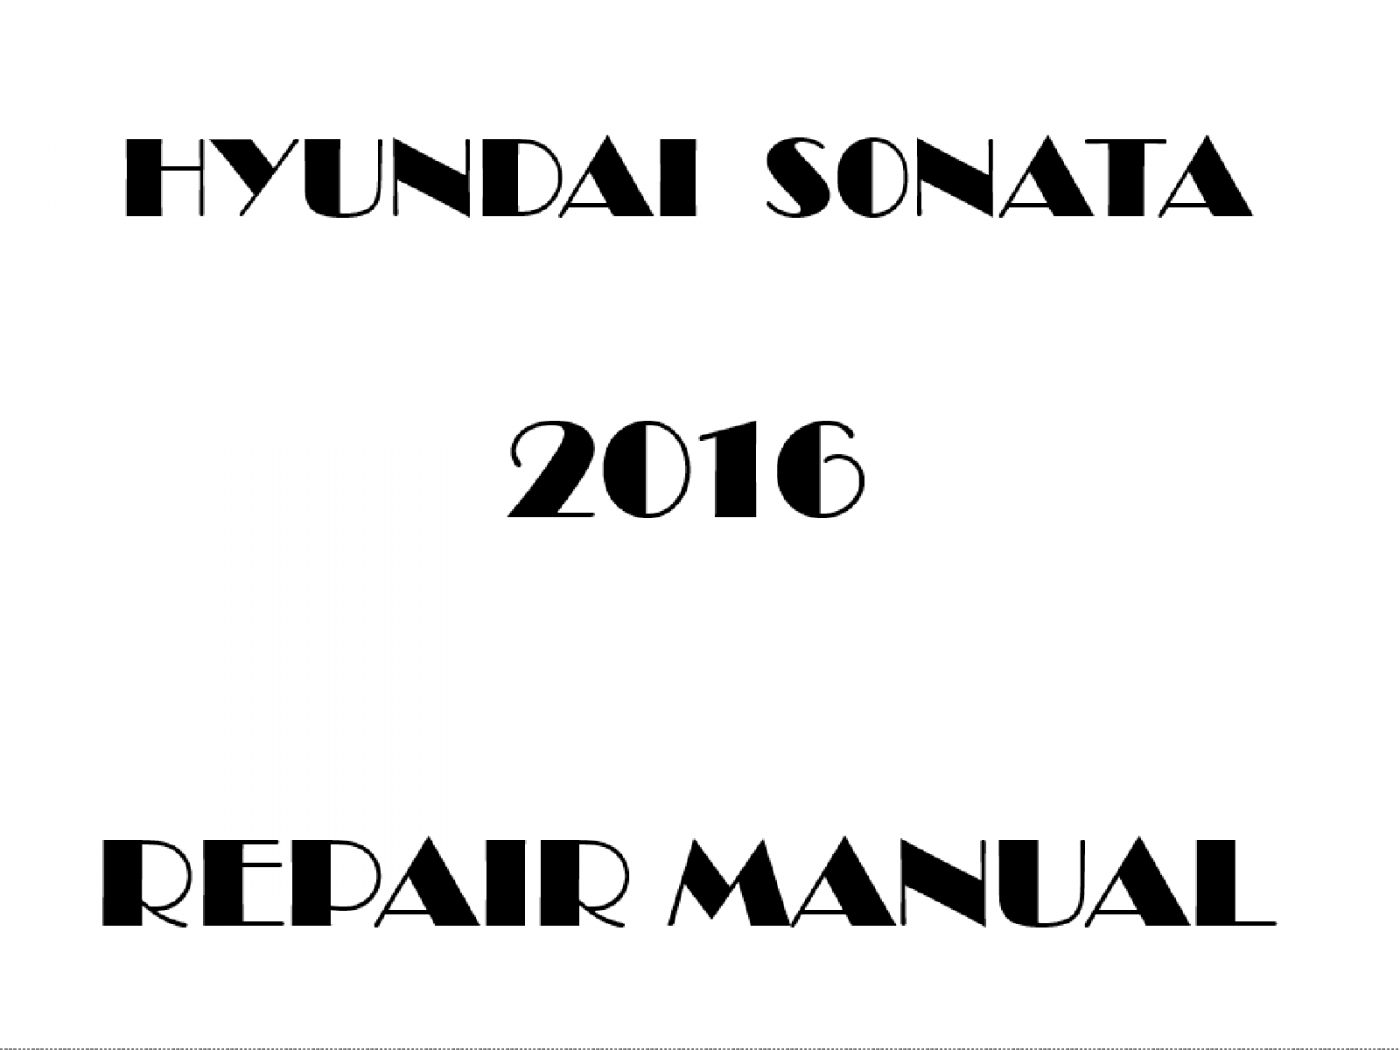 2016 Hyundai Sonata repair manual